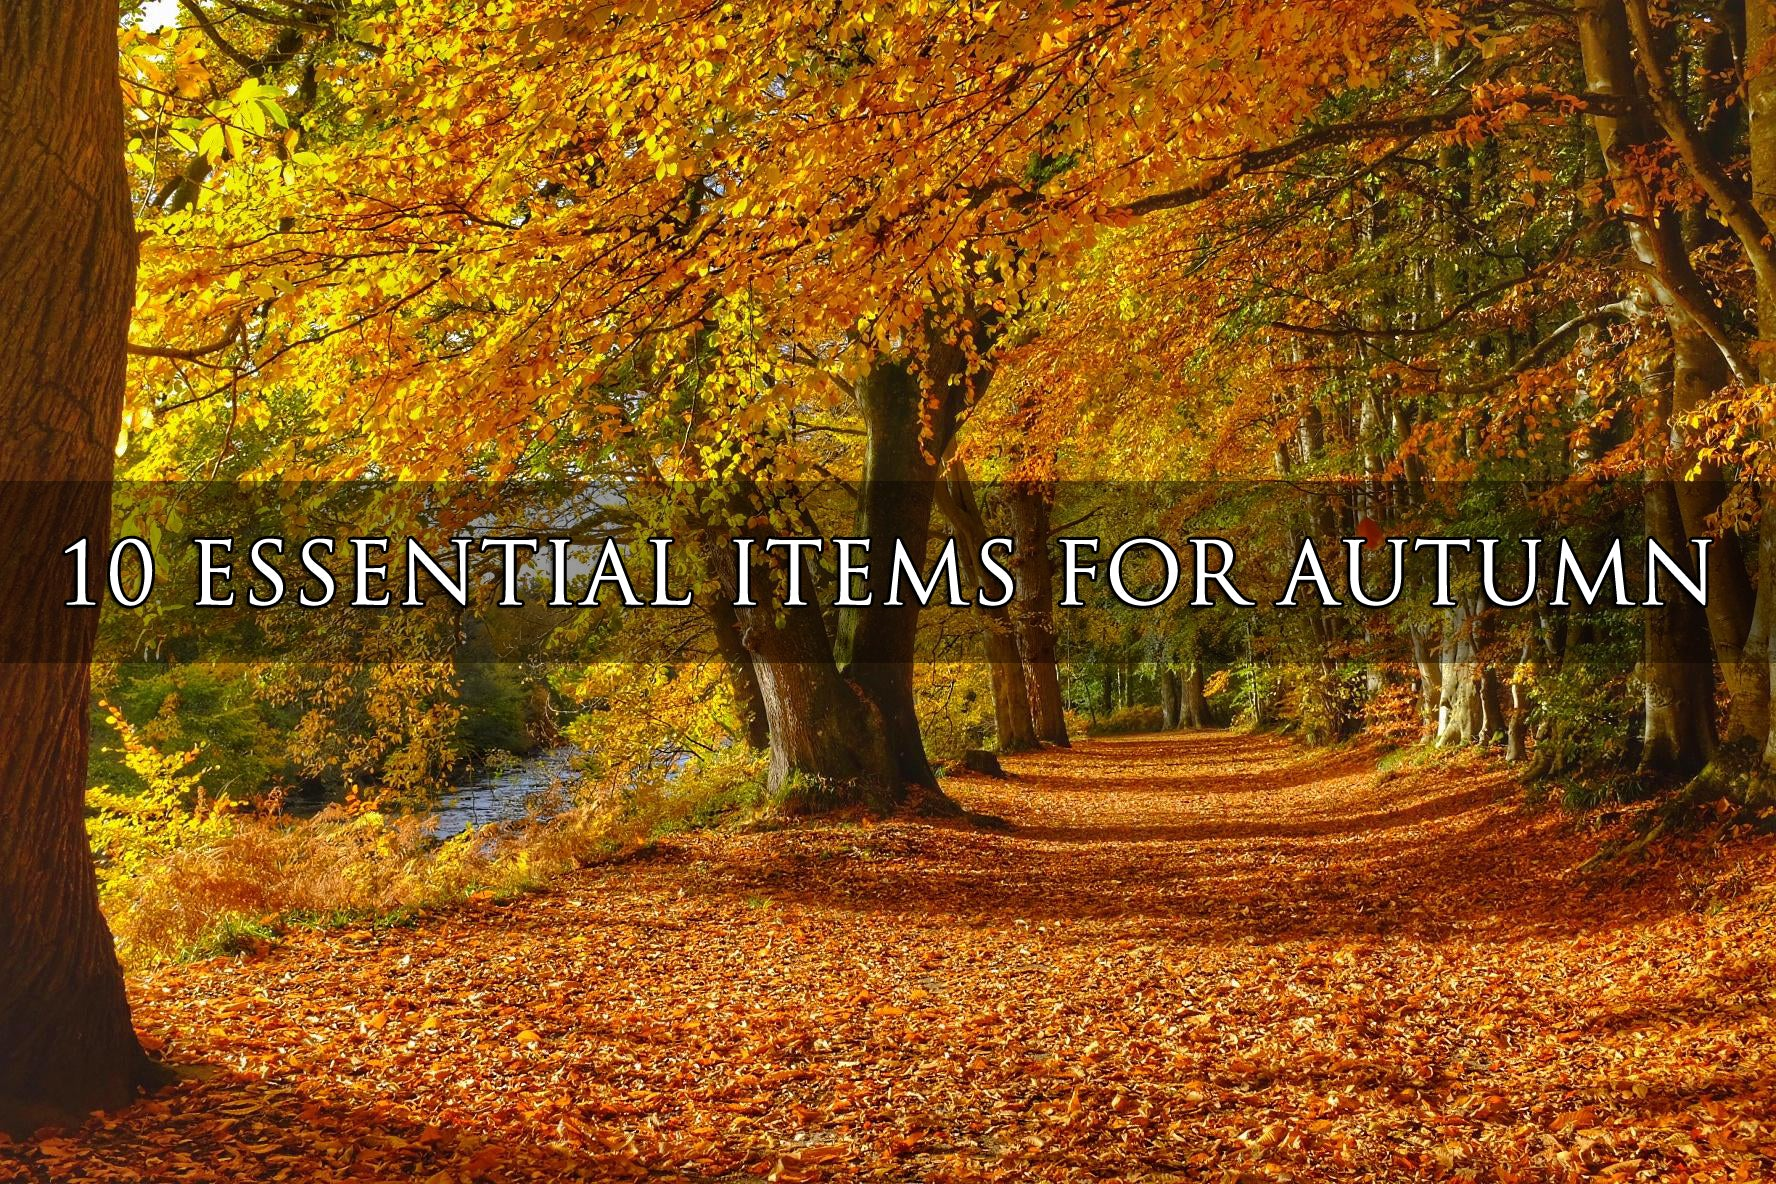 10 Essential items for Autumn!